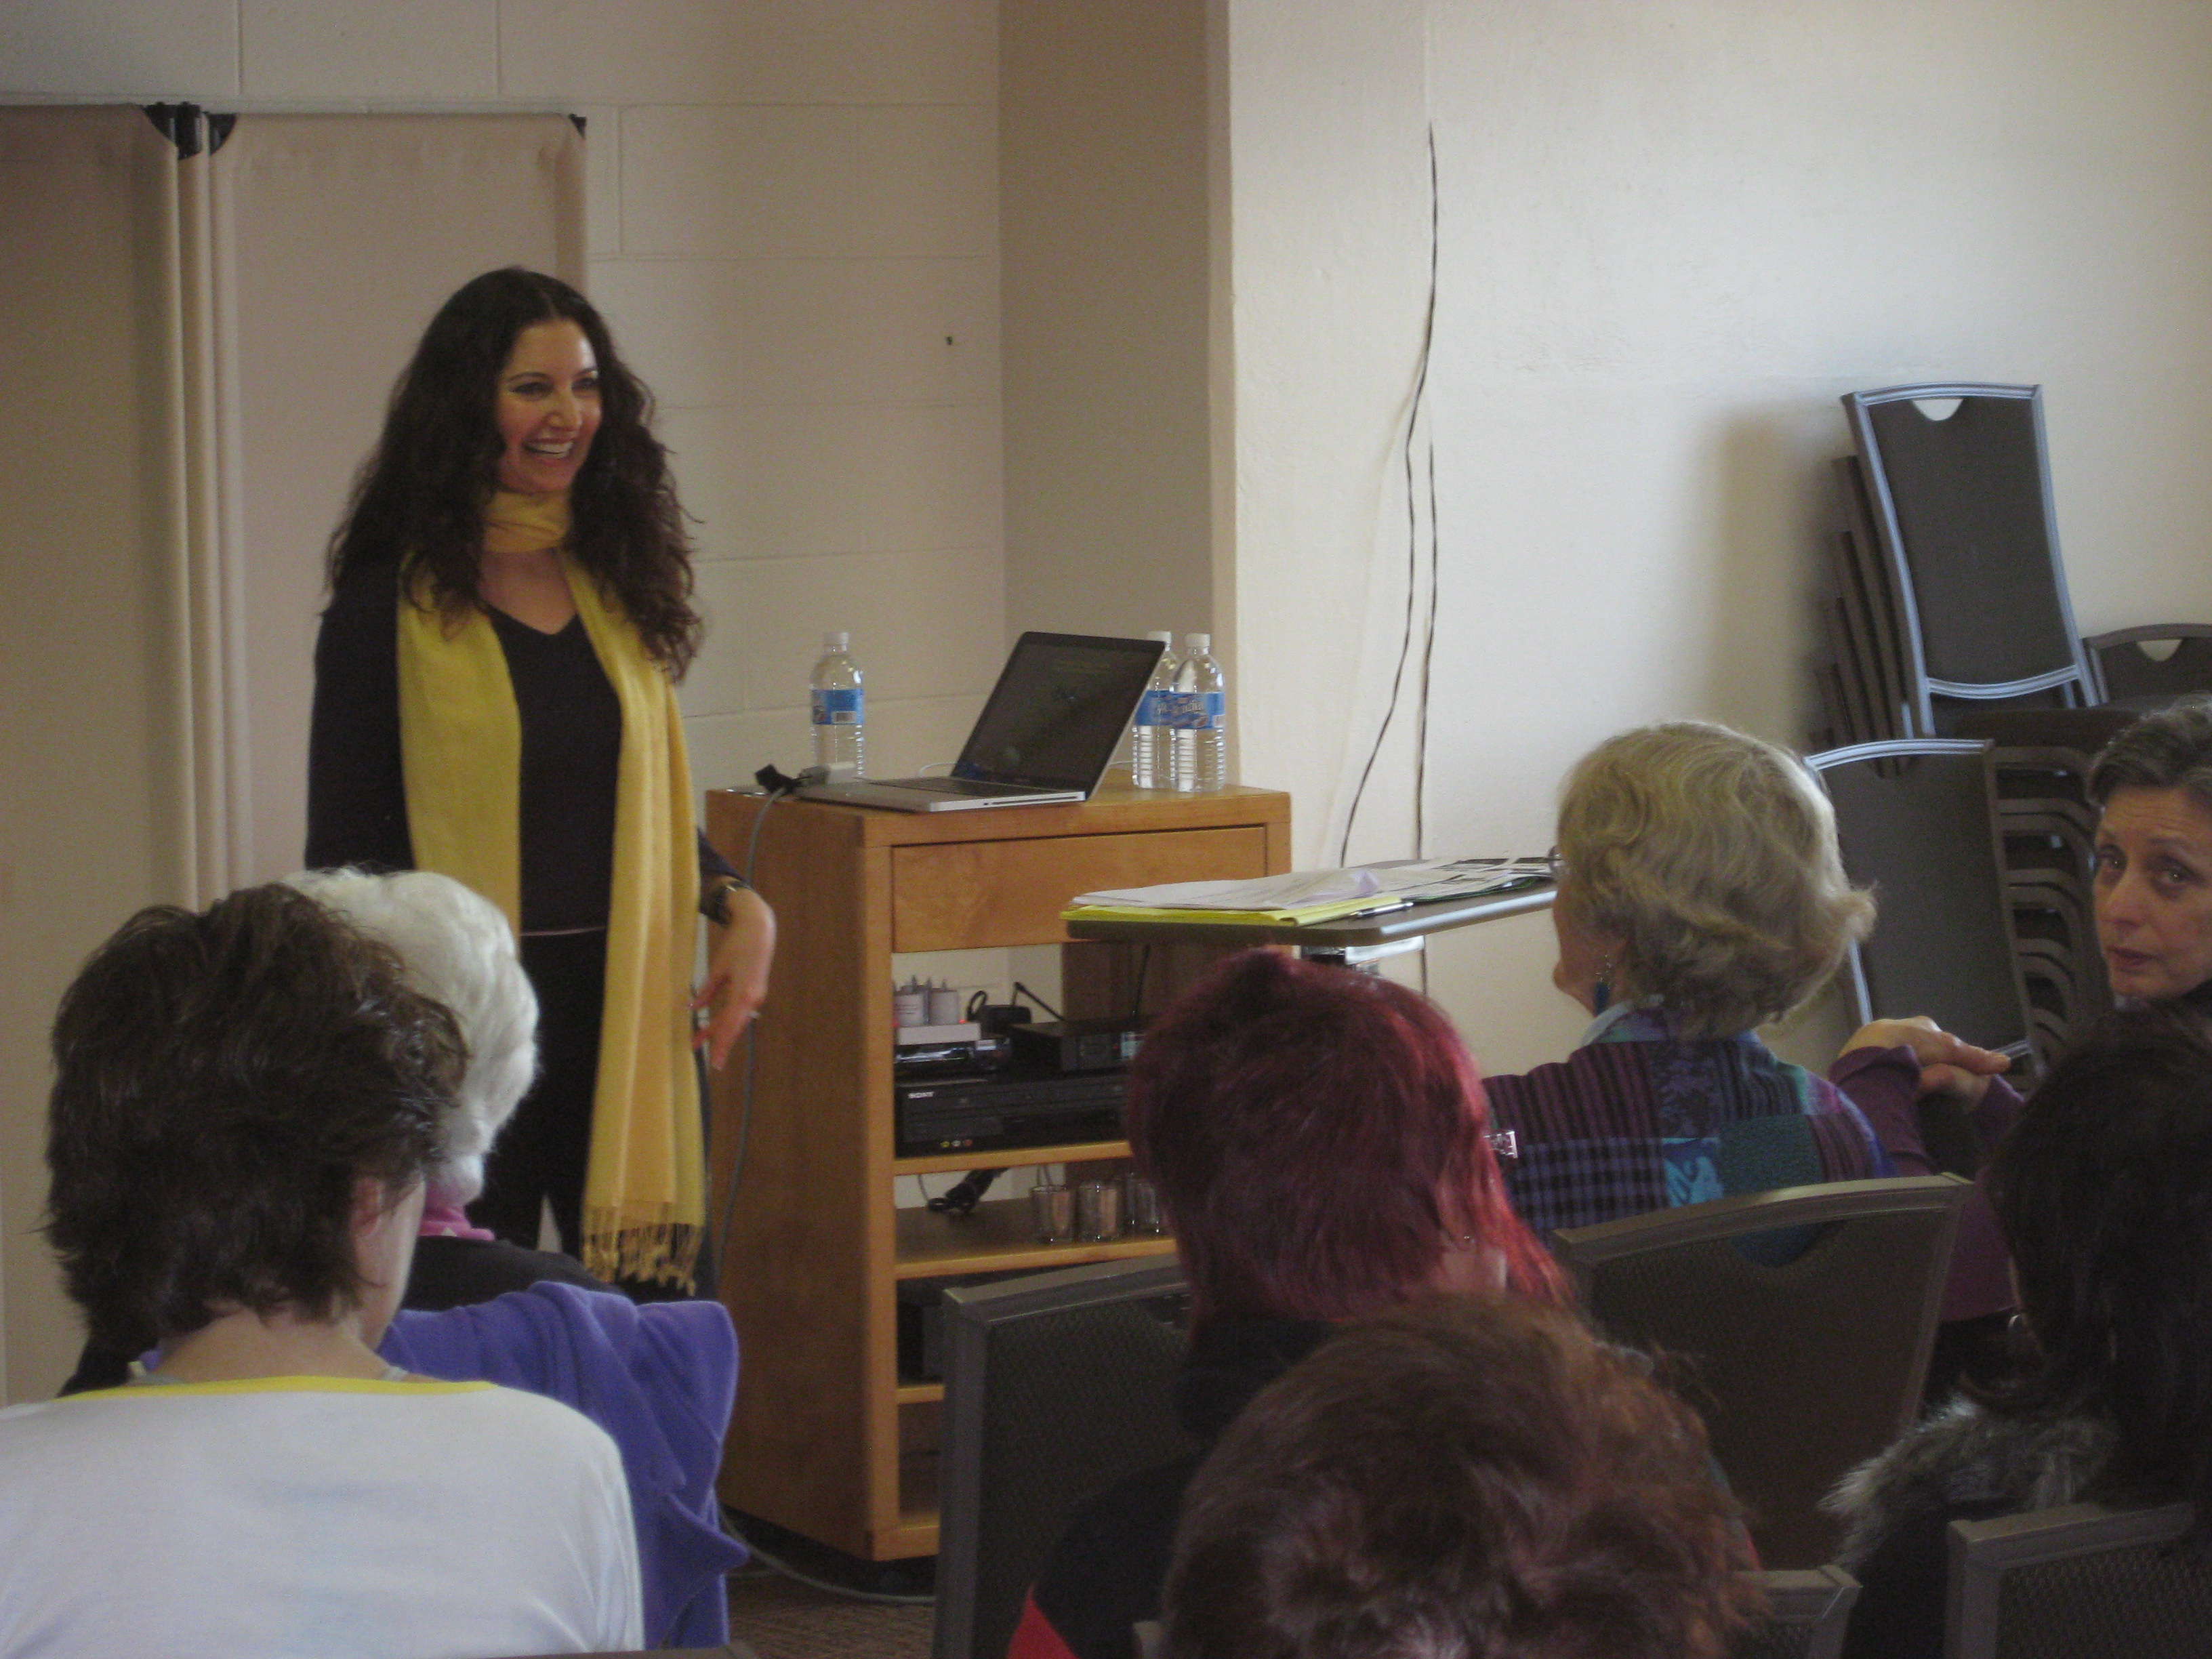 04_Melanie lecturing copy 2